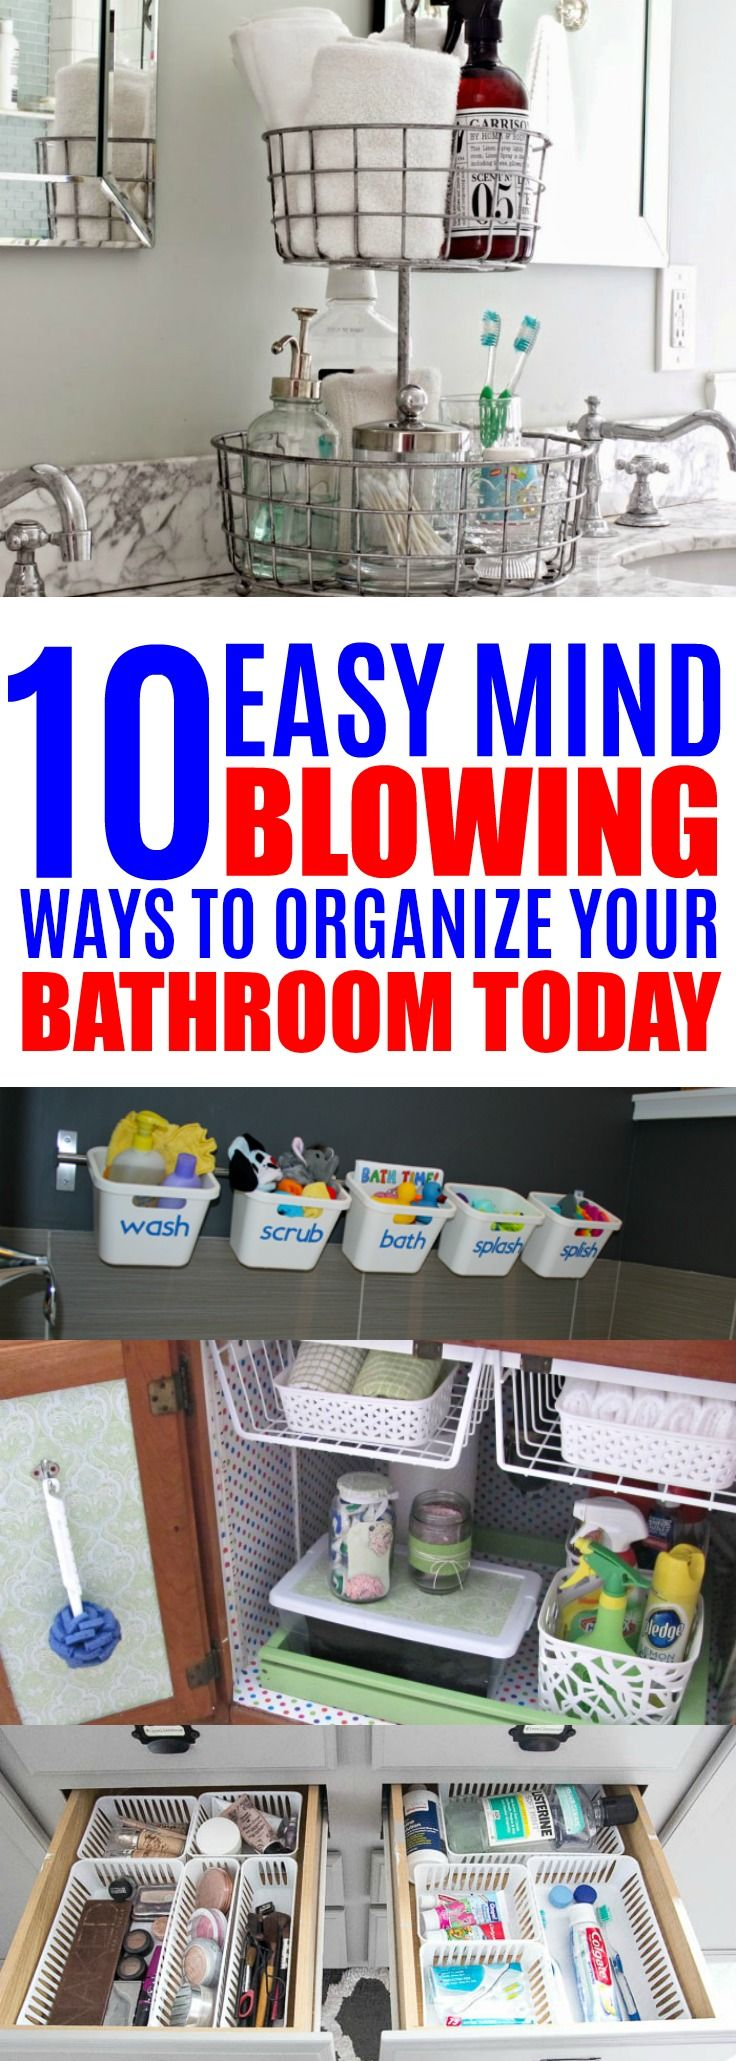 Organizing Ideas For Bathrooms, Bathroom Organization